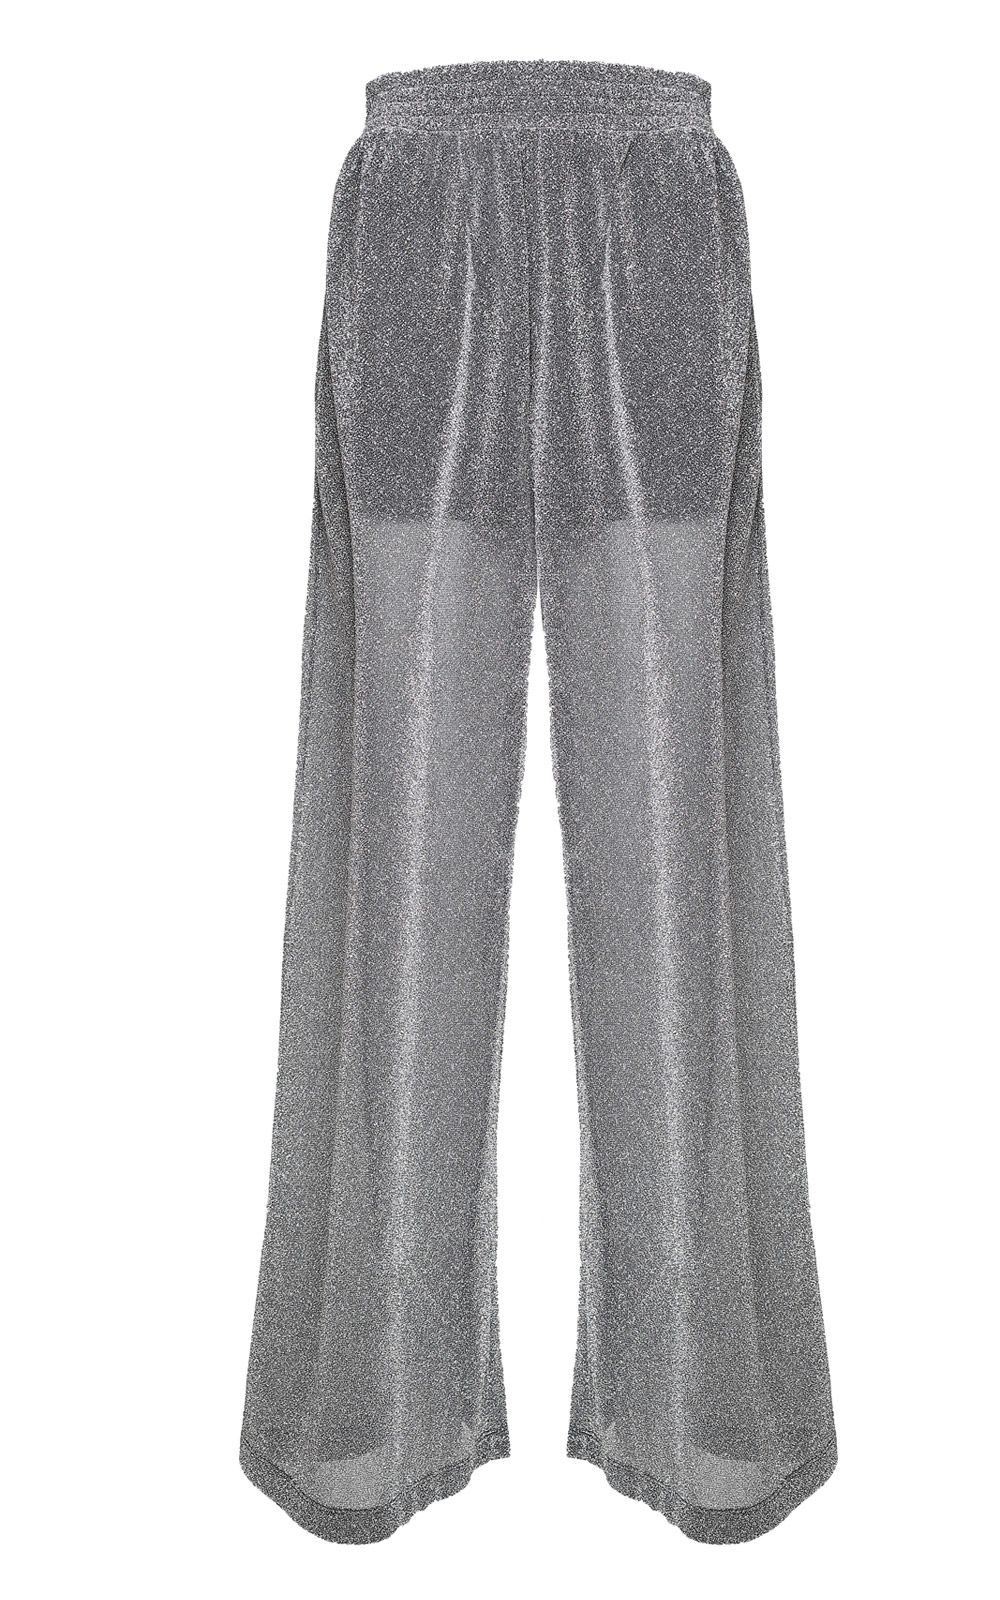 MM6 Maison Margiela Wide-leg Lurex Trousers